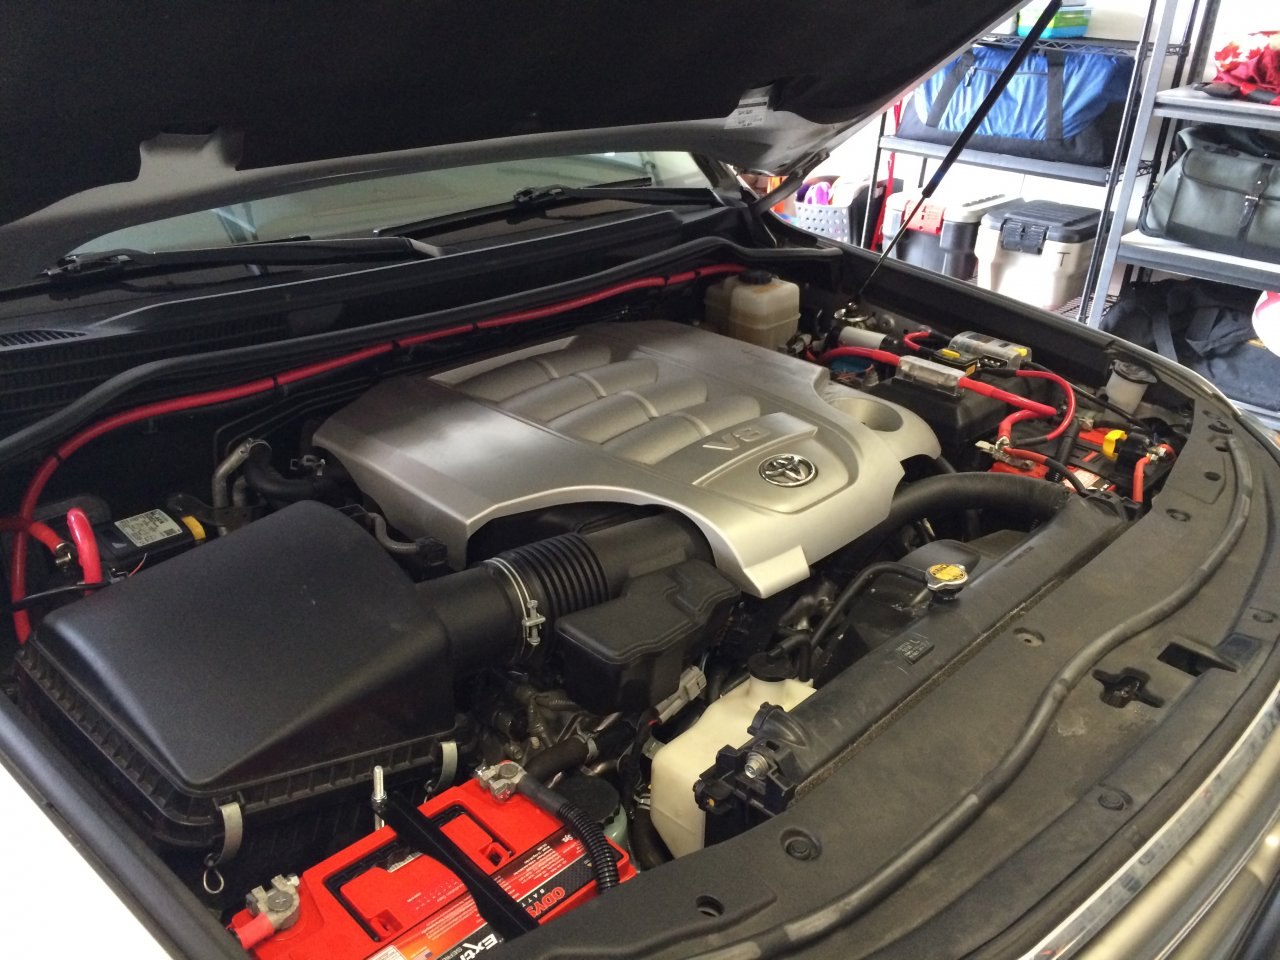 2014 Tundra Fuse Box Location Dual Battery Install Complete Ih8mud Forum